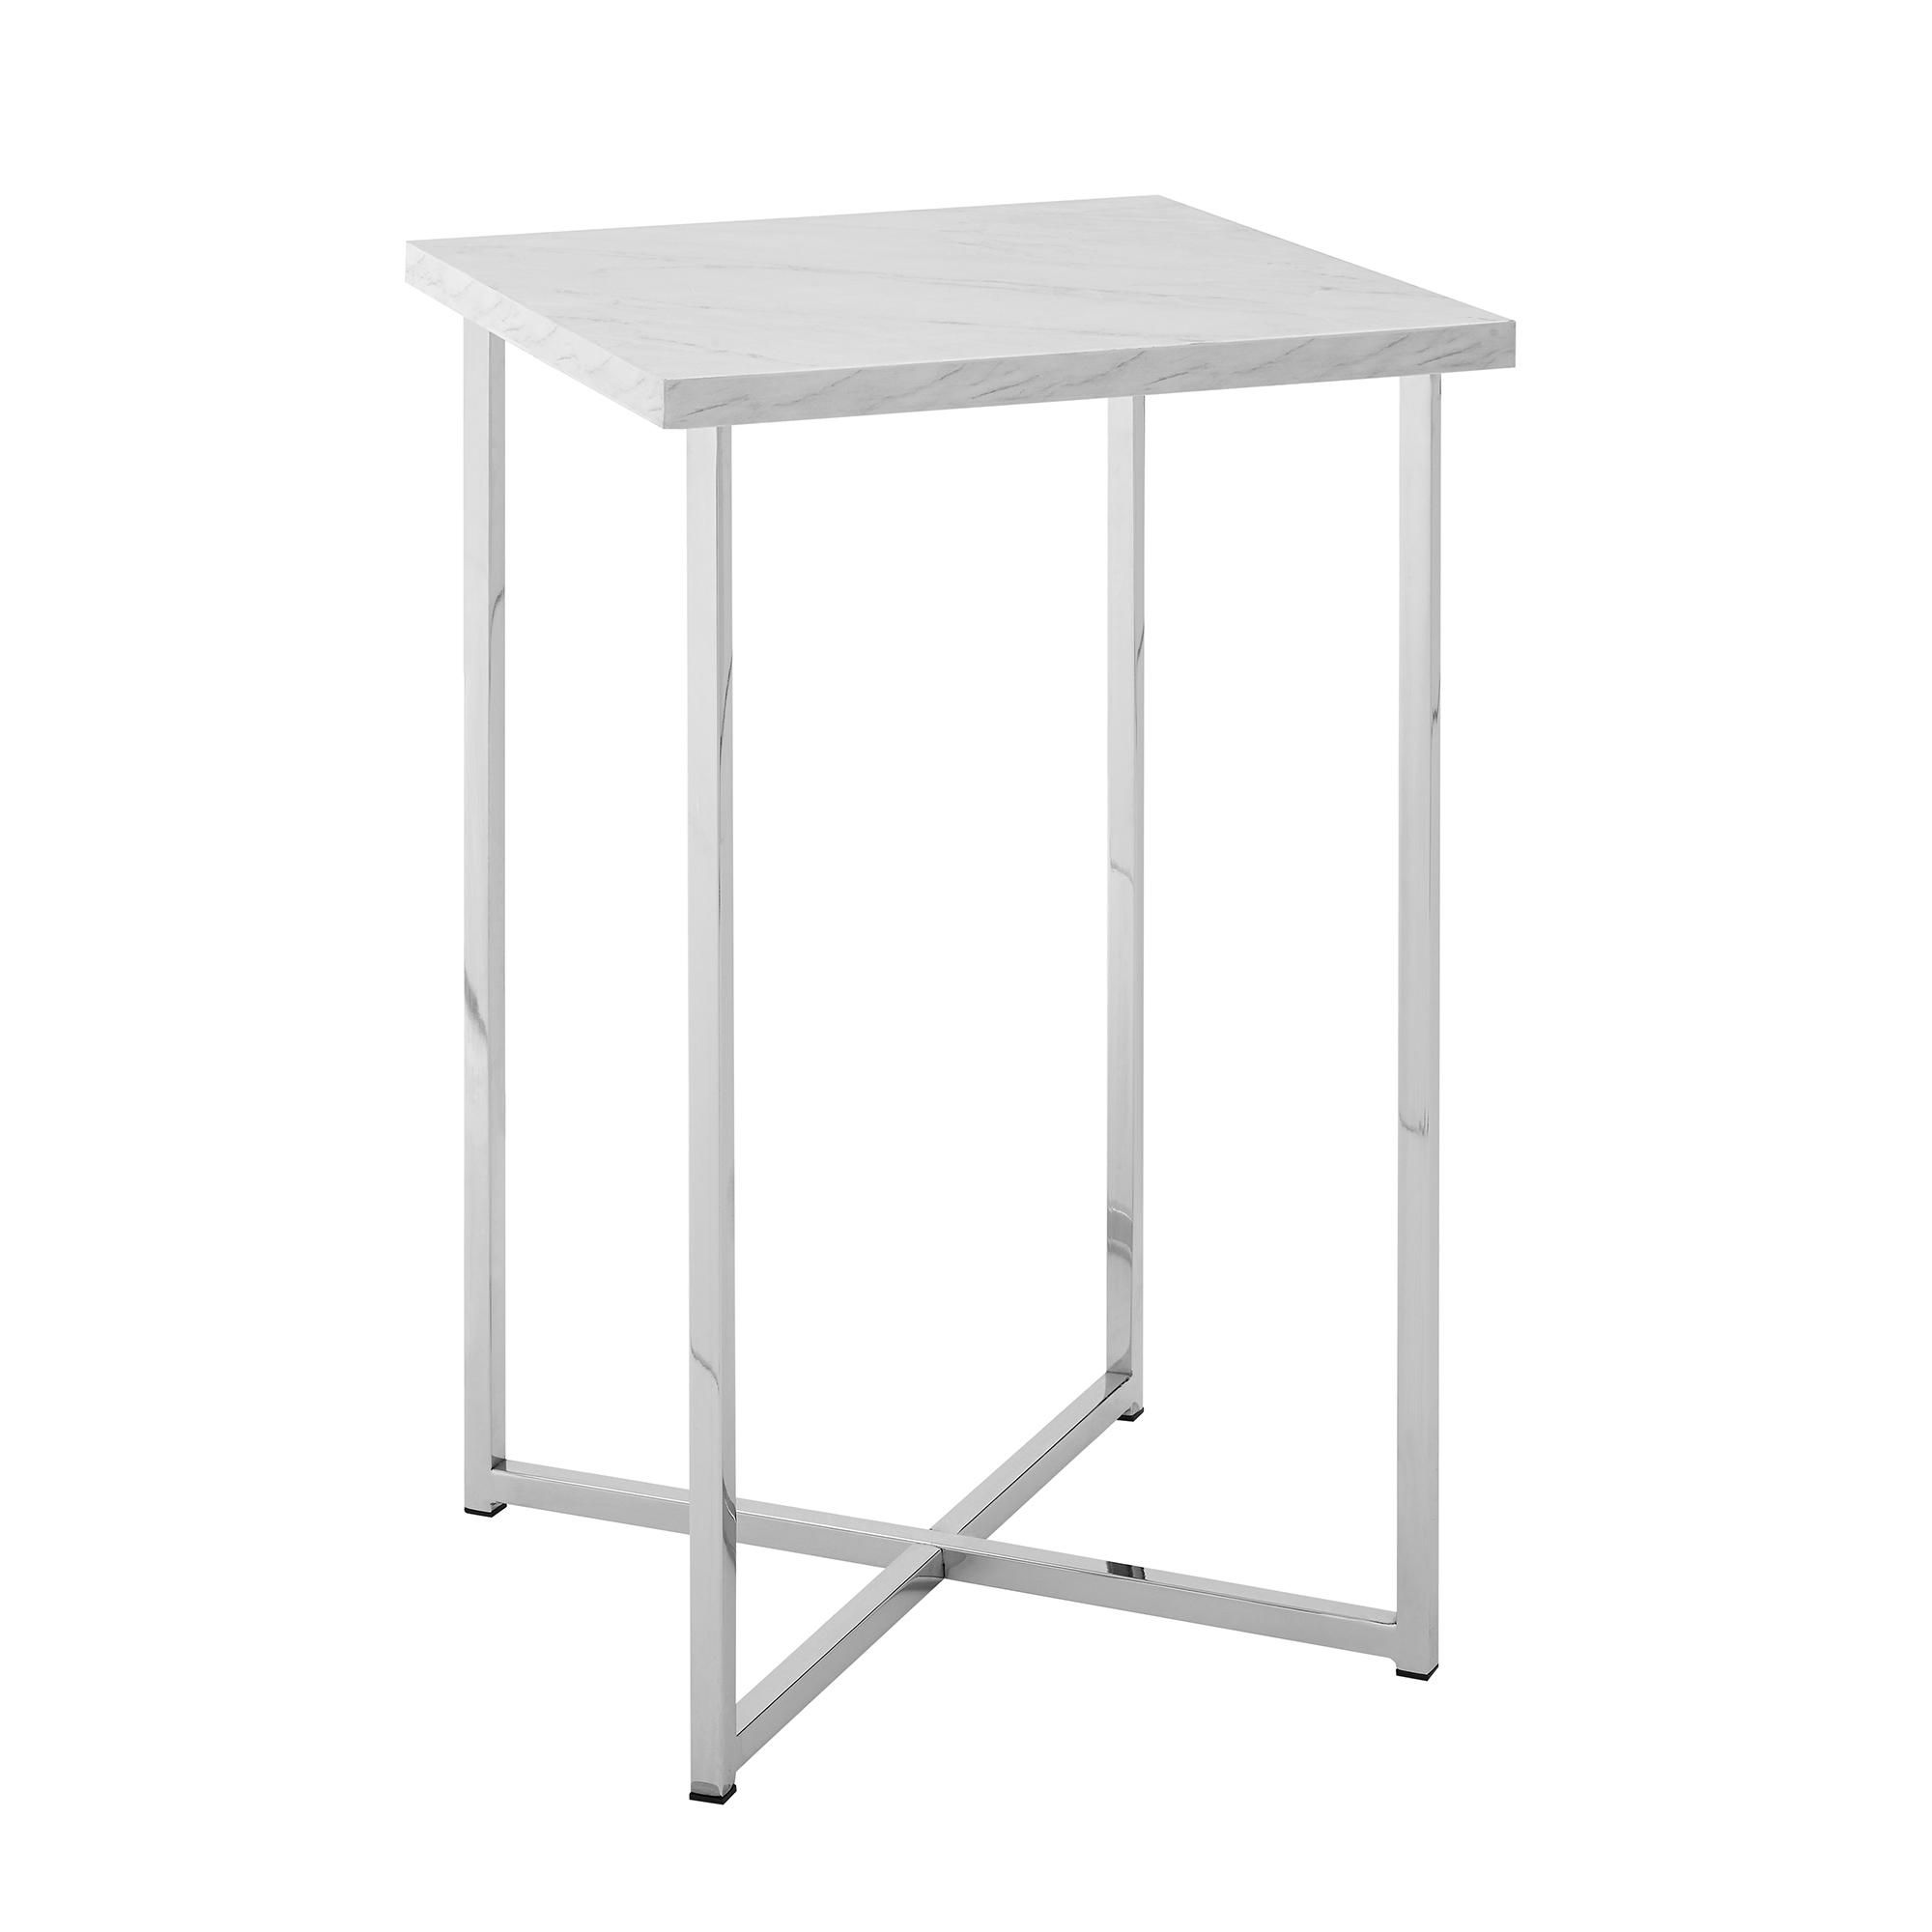 Modern Square Side Table White Marble Top Chrome Legs Square